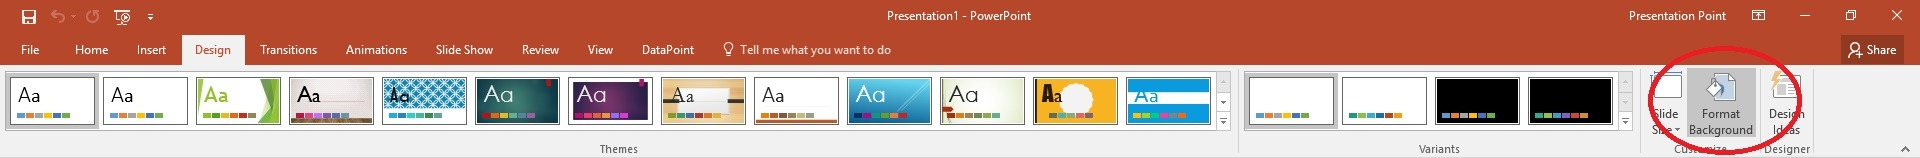 powerpoint design menu format background button